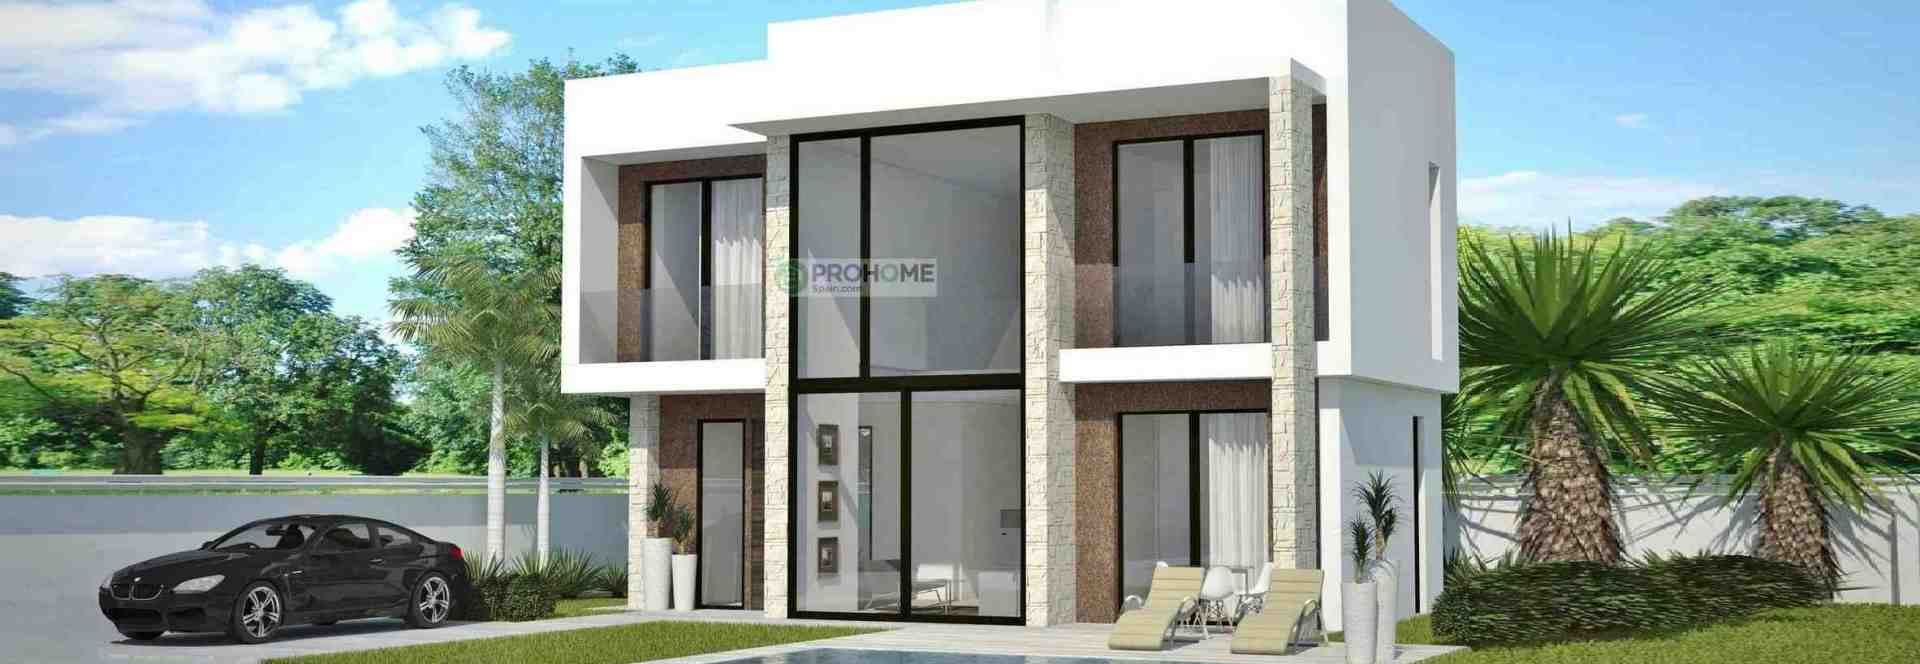 5047 Stunning Detached Modern Villas in Quesada (1.5)